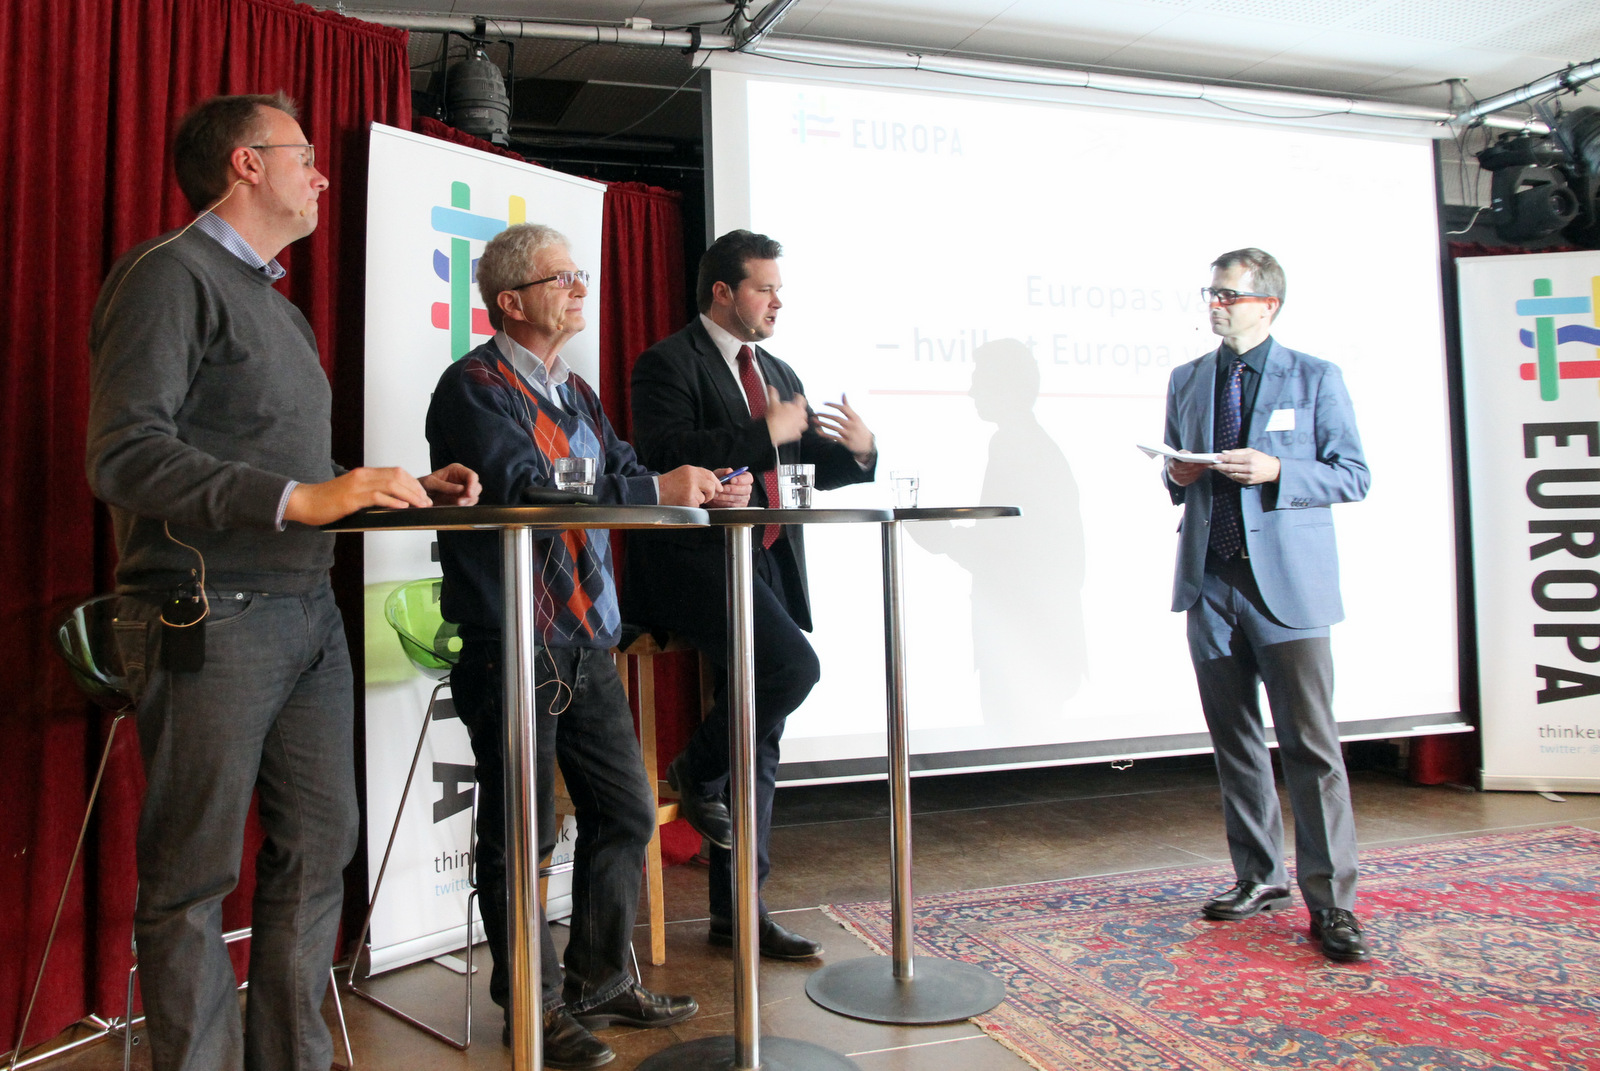 New Pact for Europe in Copenhagen,Thinkeuropa Festival 2015